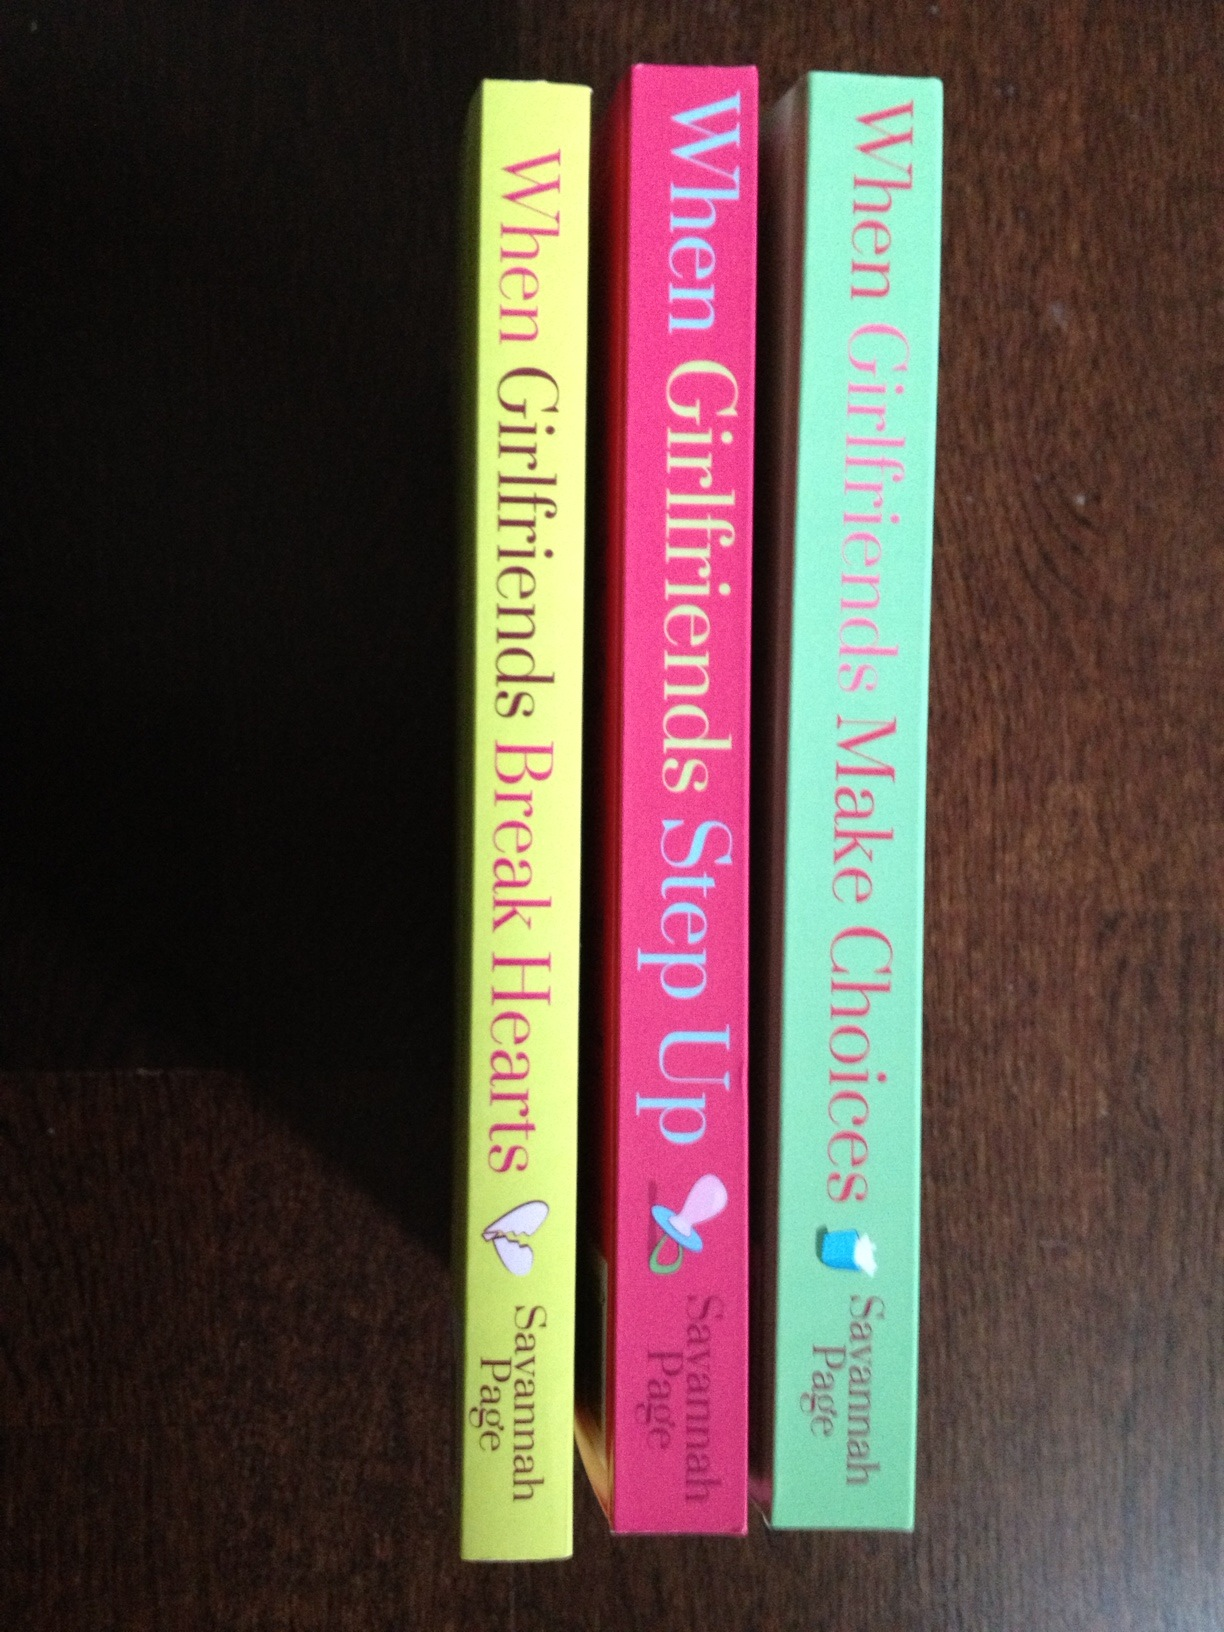 Book Spines - Savannah Page